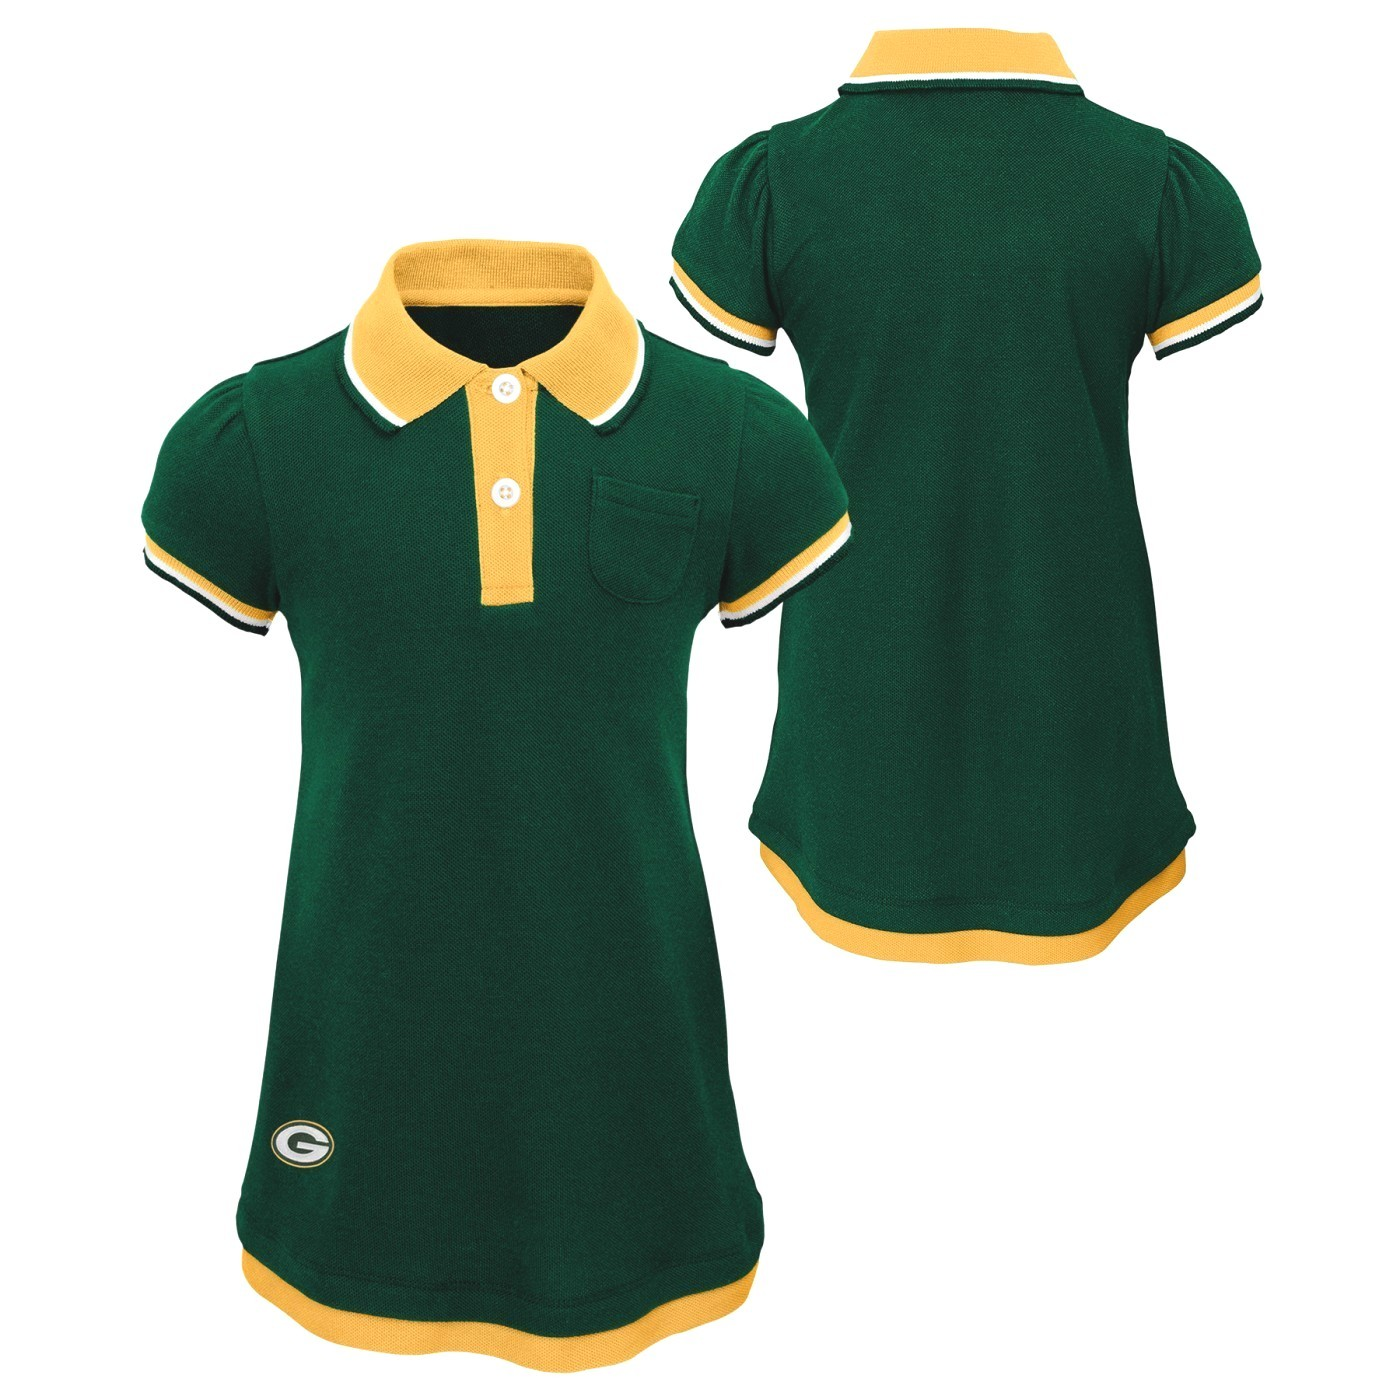 Details about Green Bay Packers NFL  Lil Cheer Coach  Toddler Girls Faux Layer Polo Dress  sc 1 st  eBay & Green Bay Packers NFL